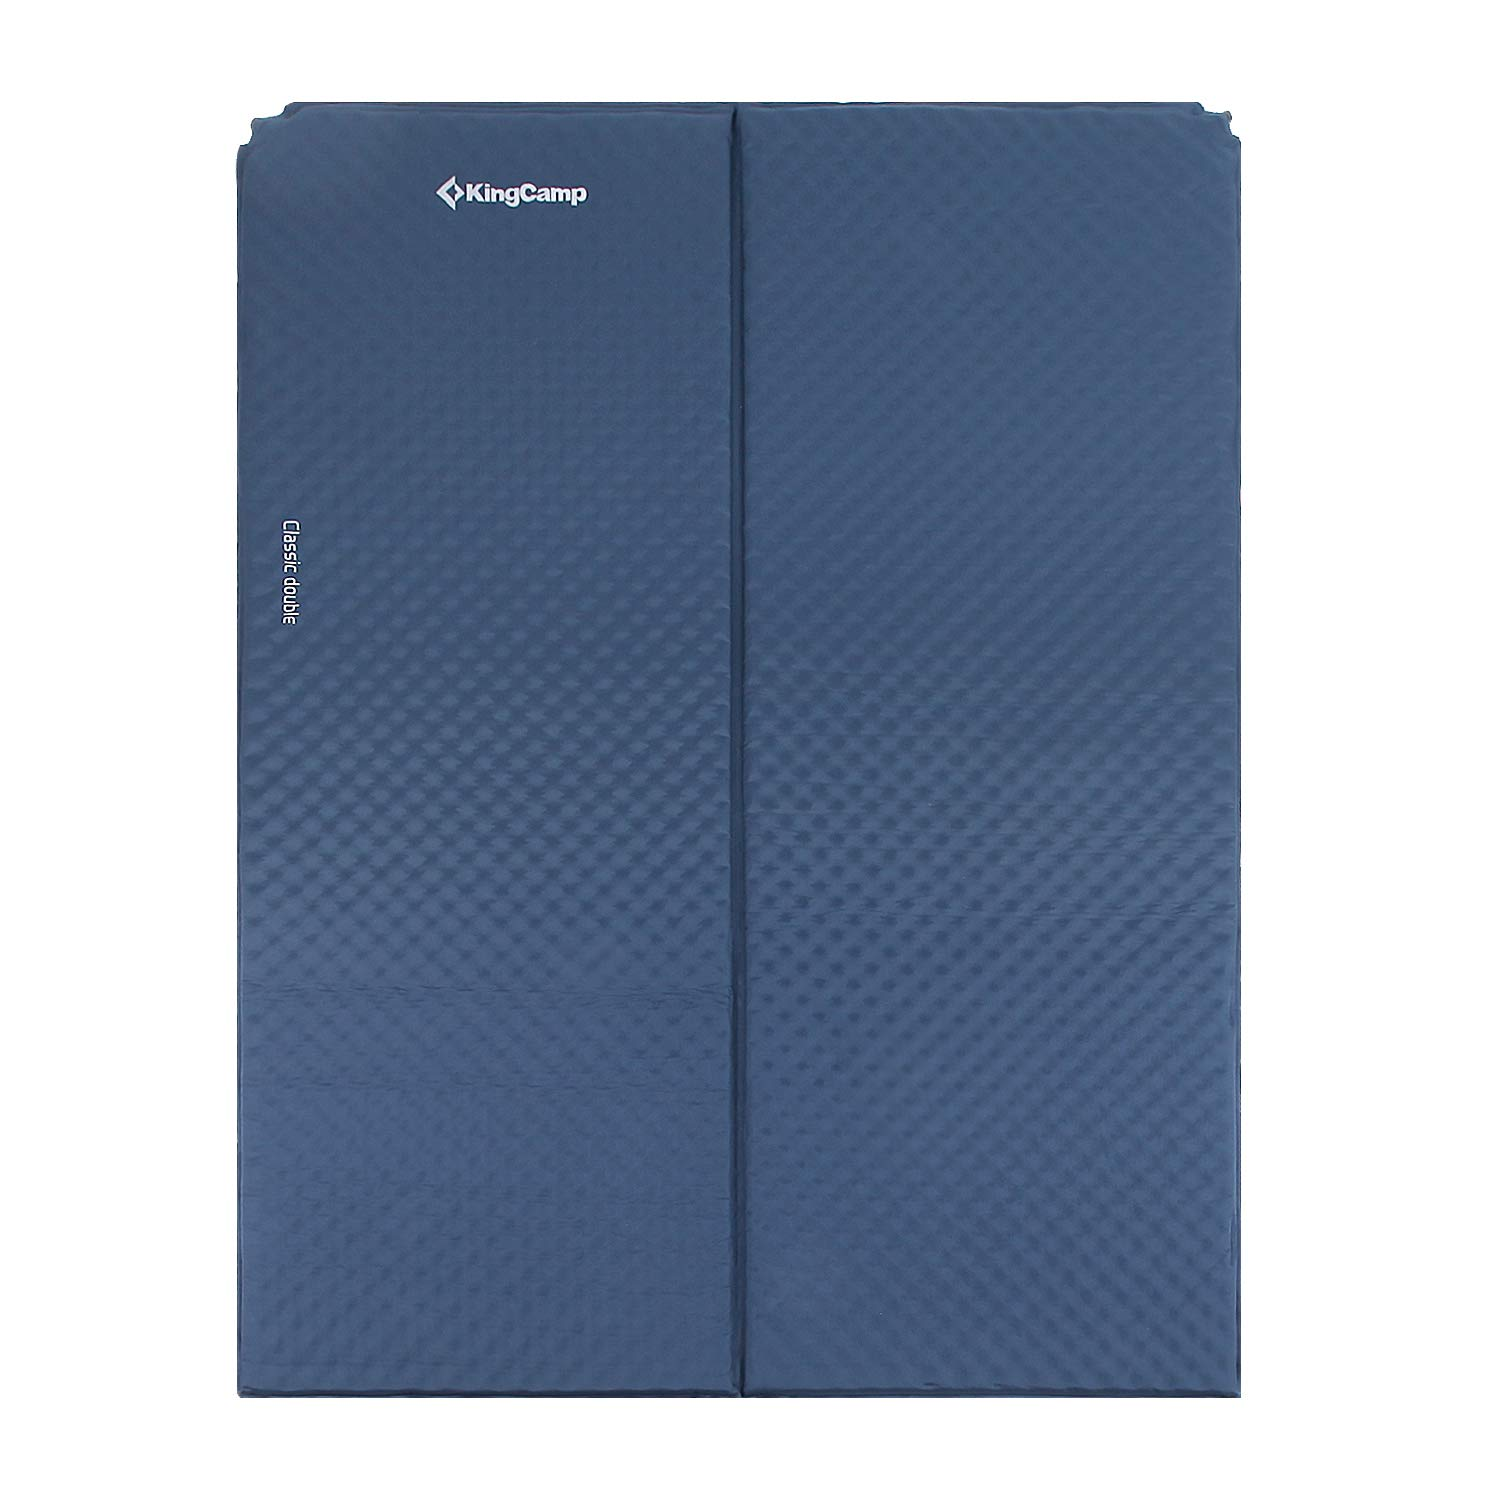 KingCamp Classic Double Light Self-Inflating Camping Sleeping Pad, Foldable Foam Sleeping Mat for Outdoor, Picnic by KingCamp